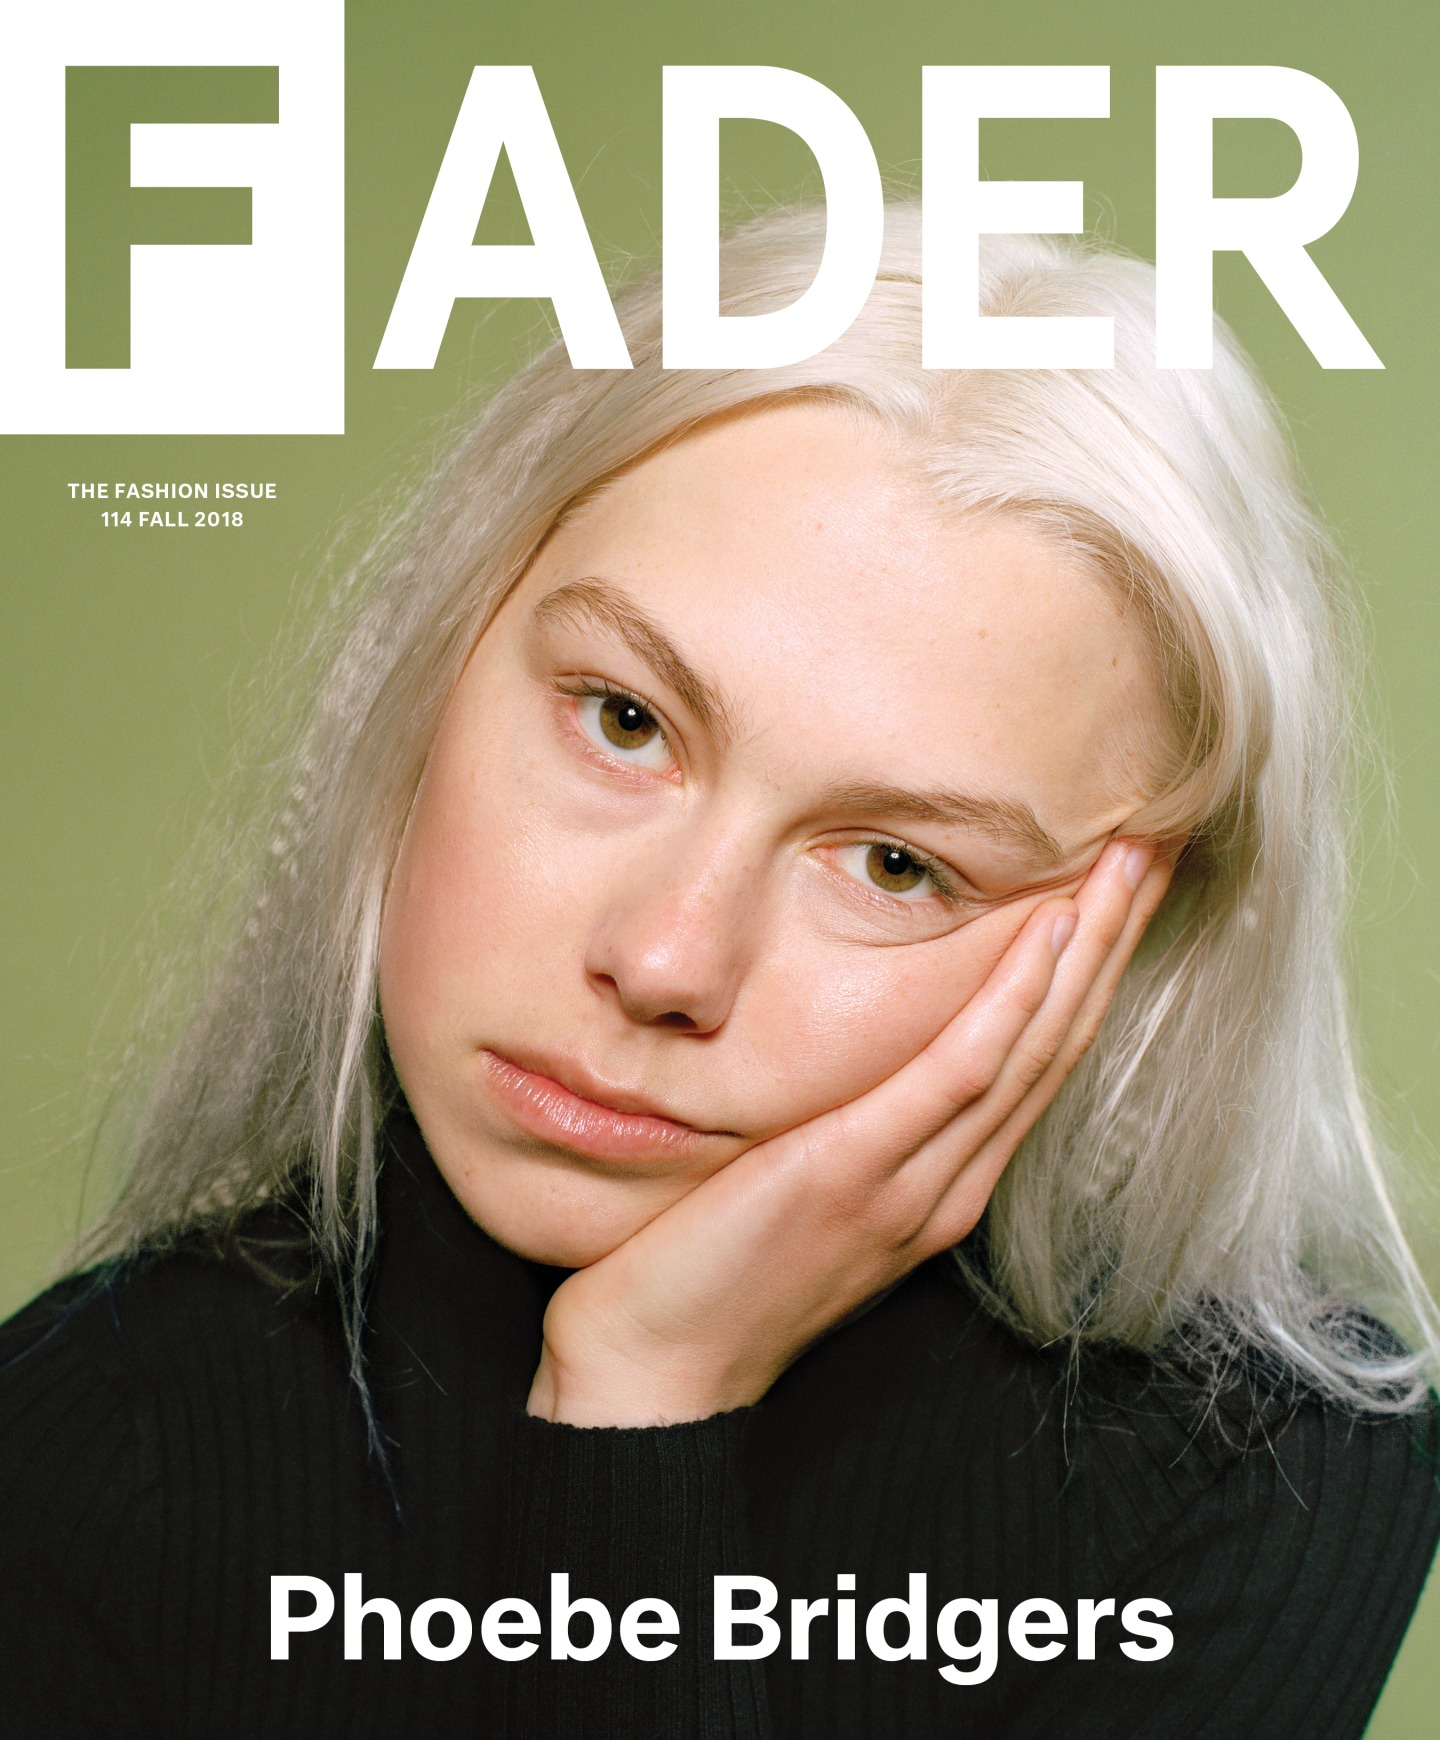 Cover Story: Phoebe Bridgers | The FADER